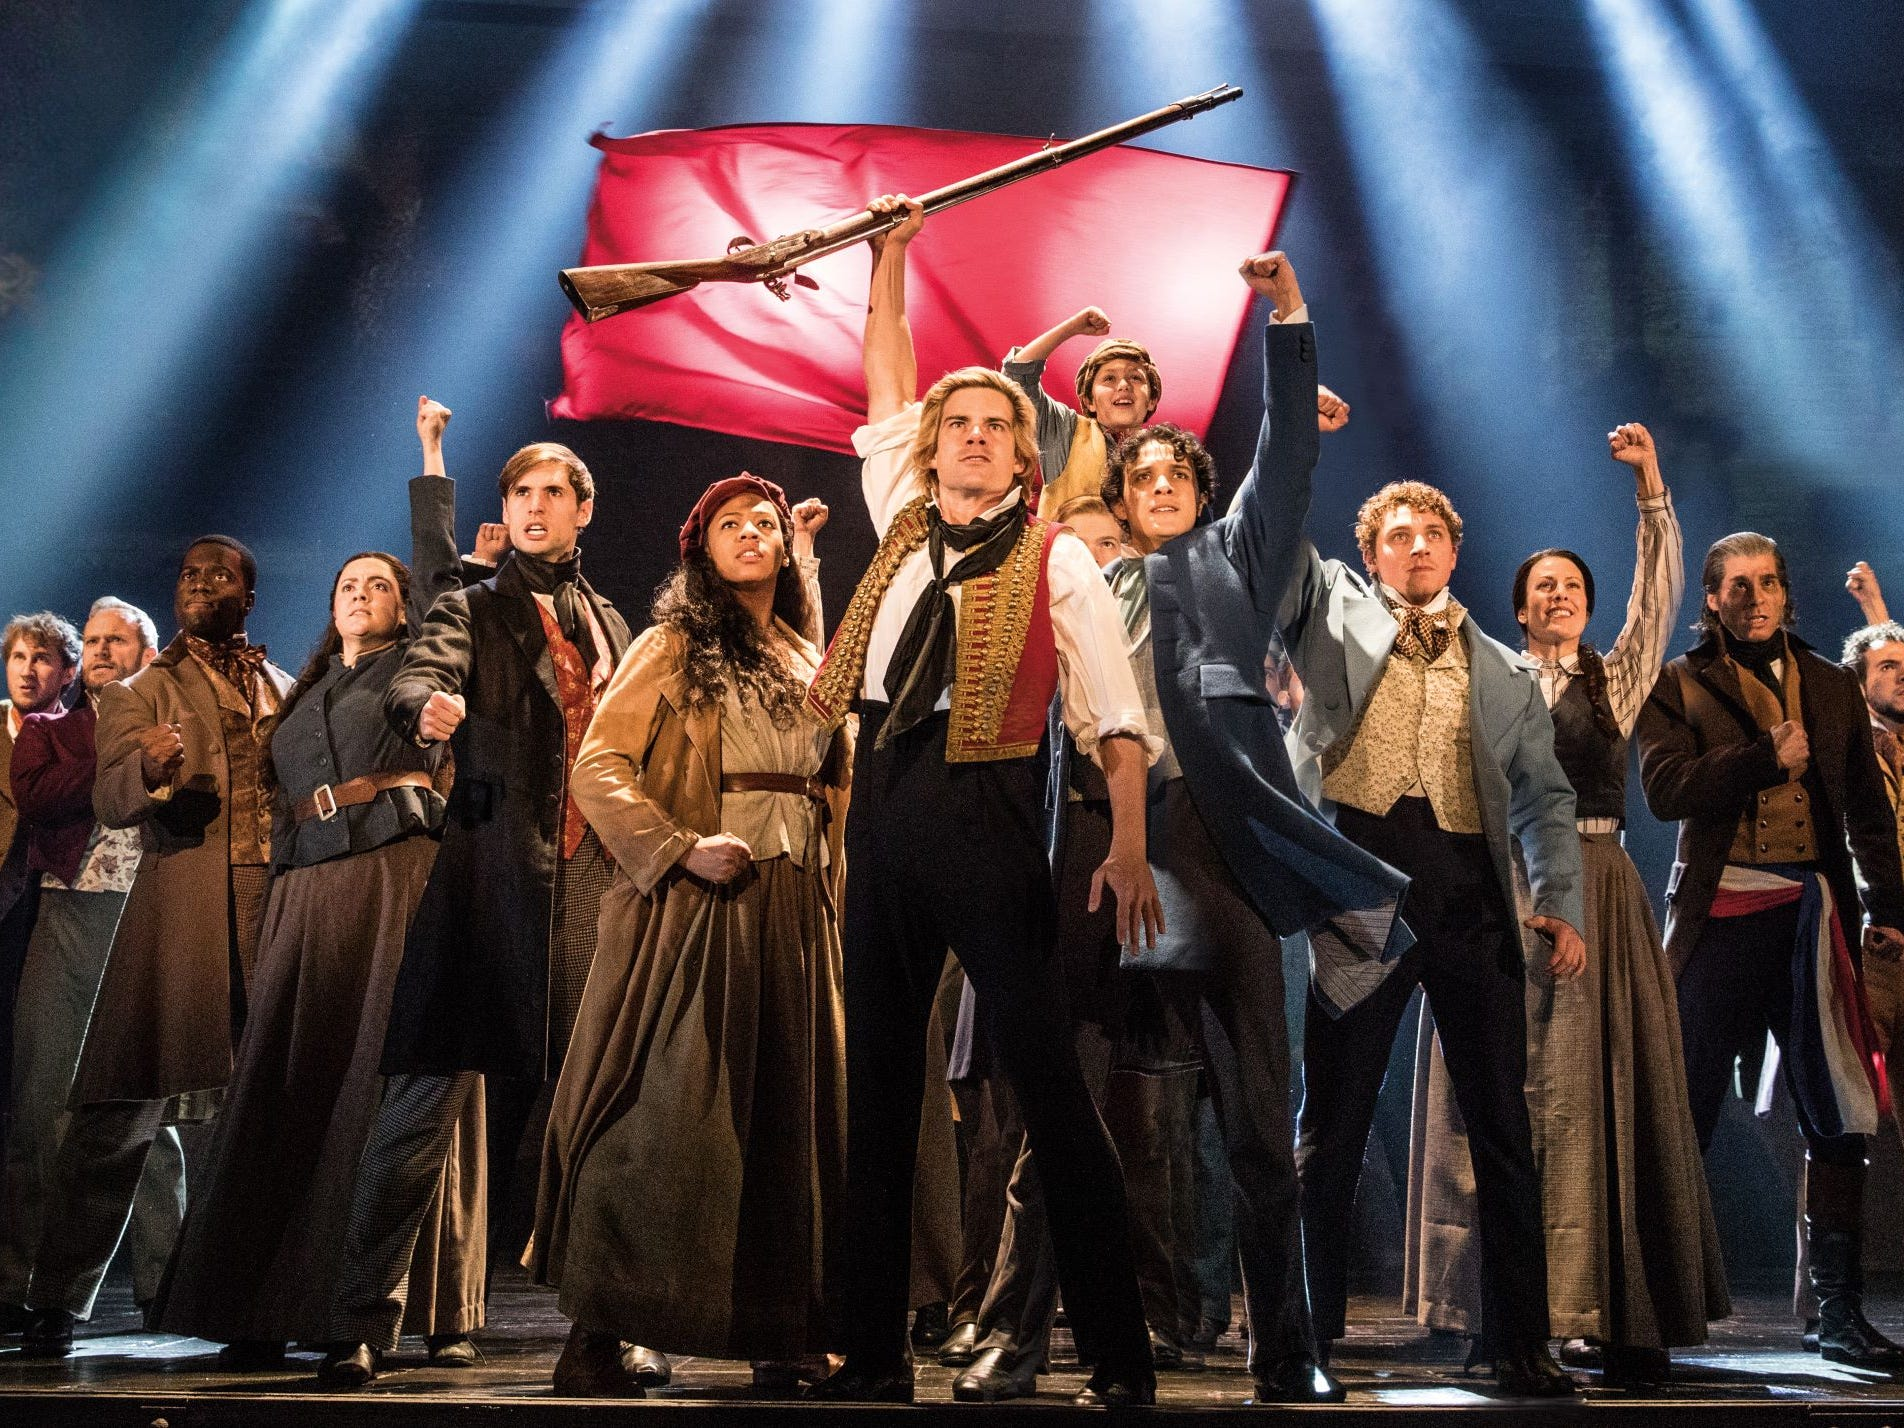 D&C subscribers can receive $15 off select tickets to Les Miserables